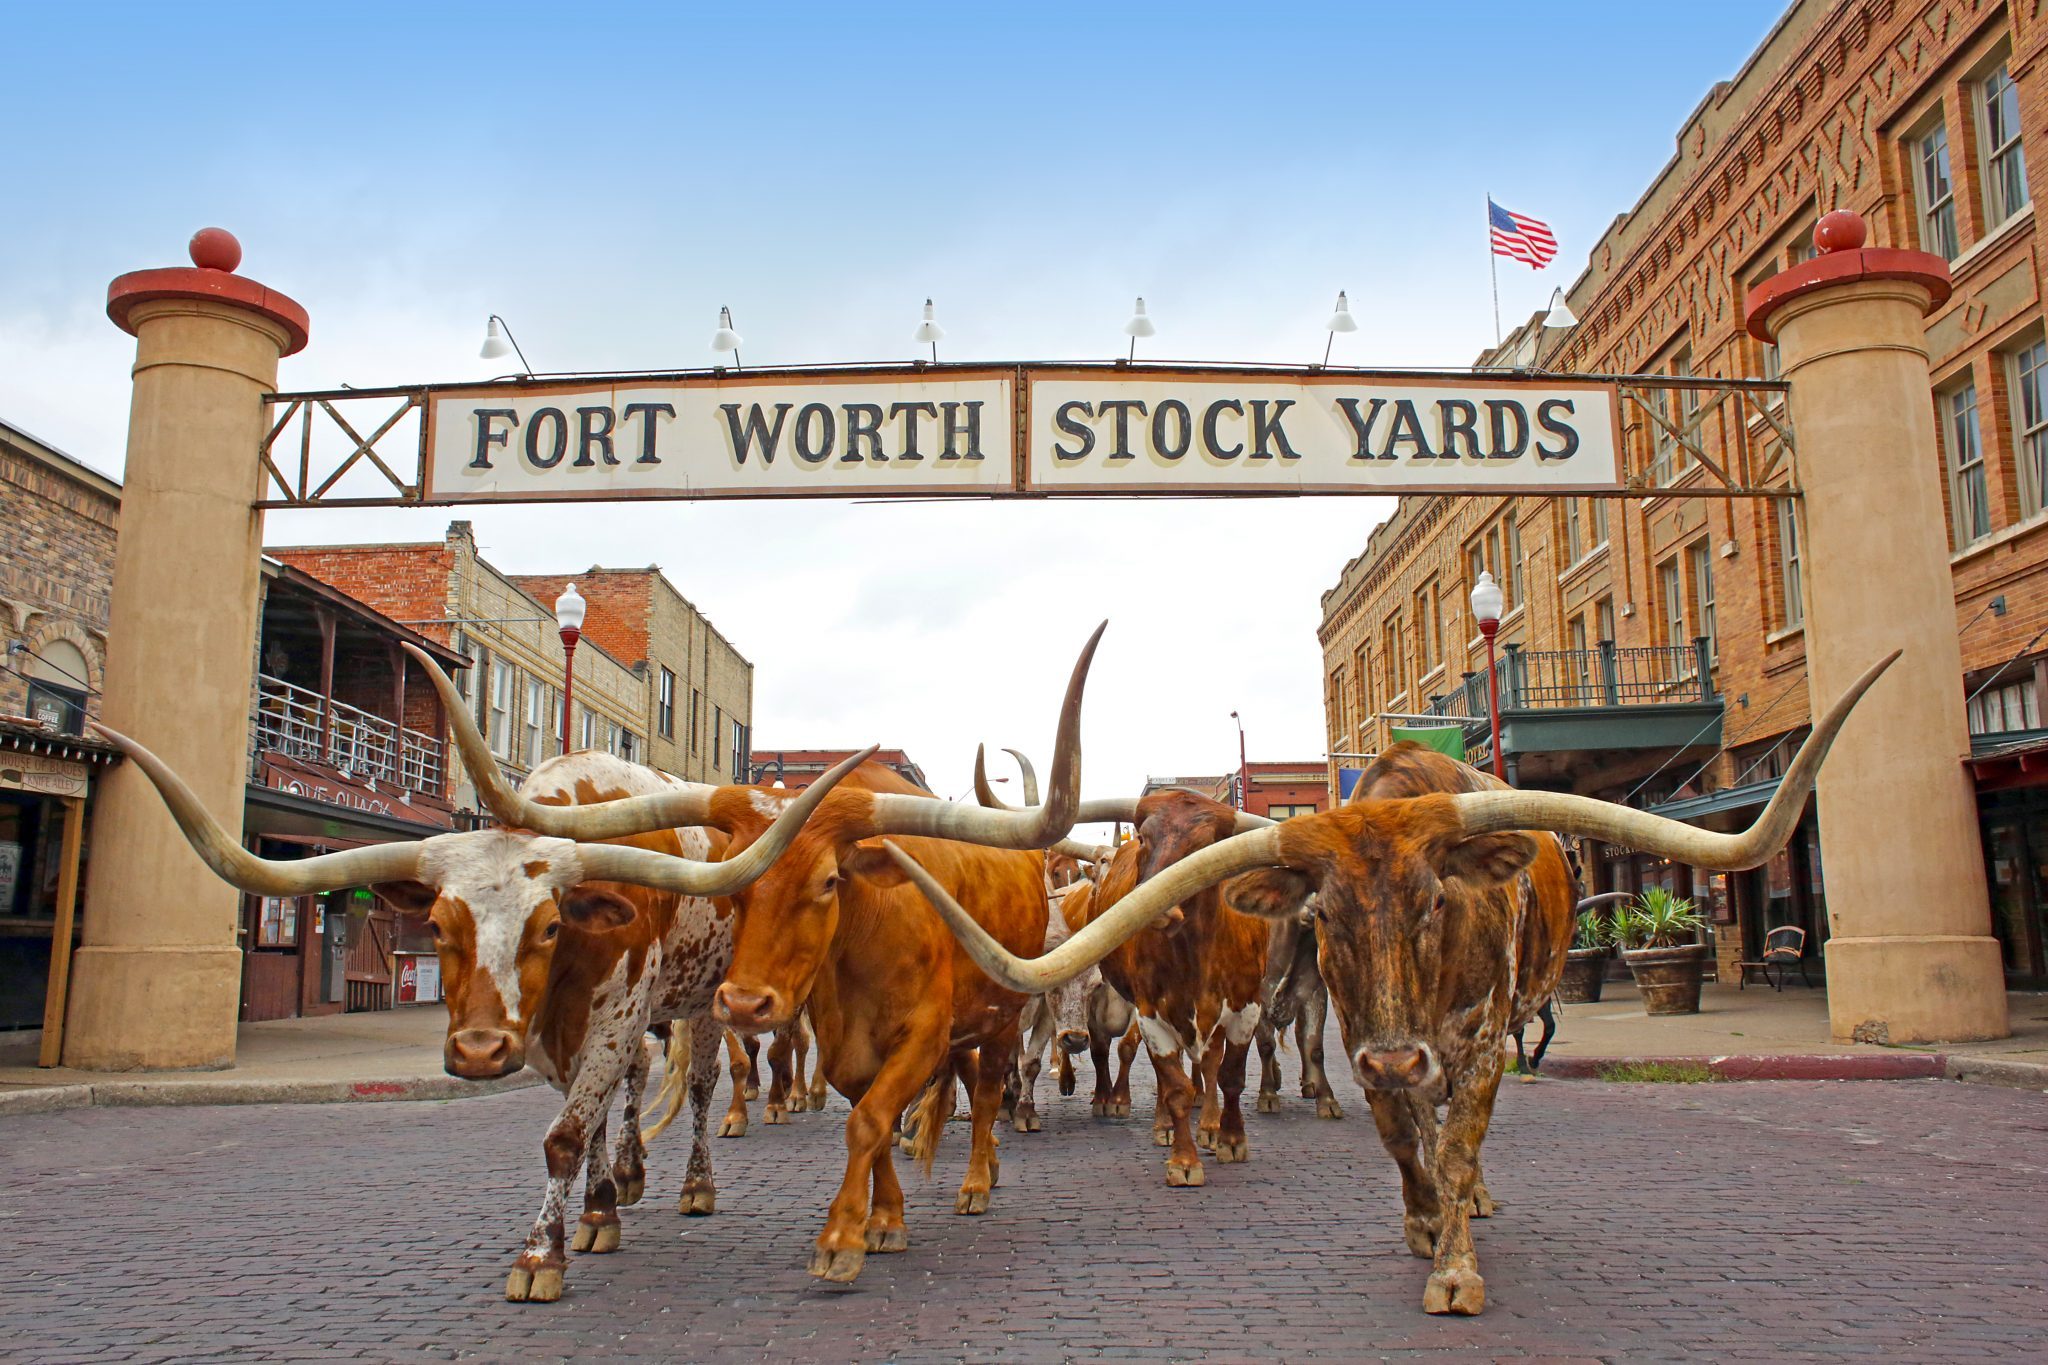 Things to do in Fort Worth